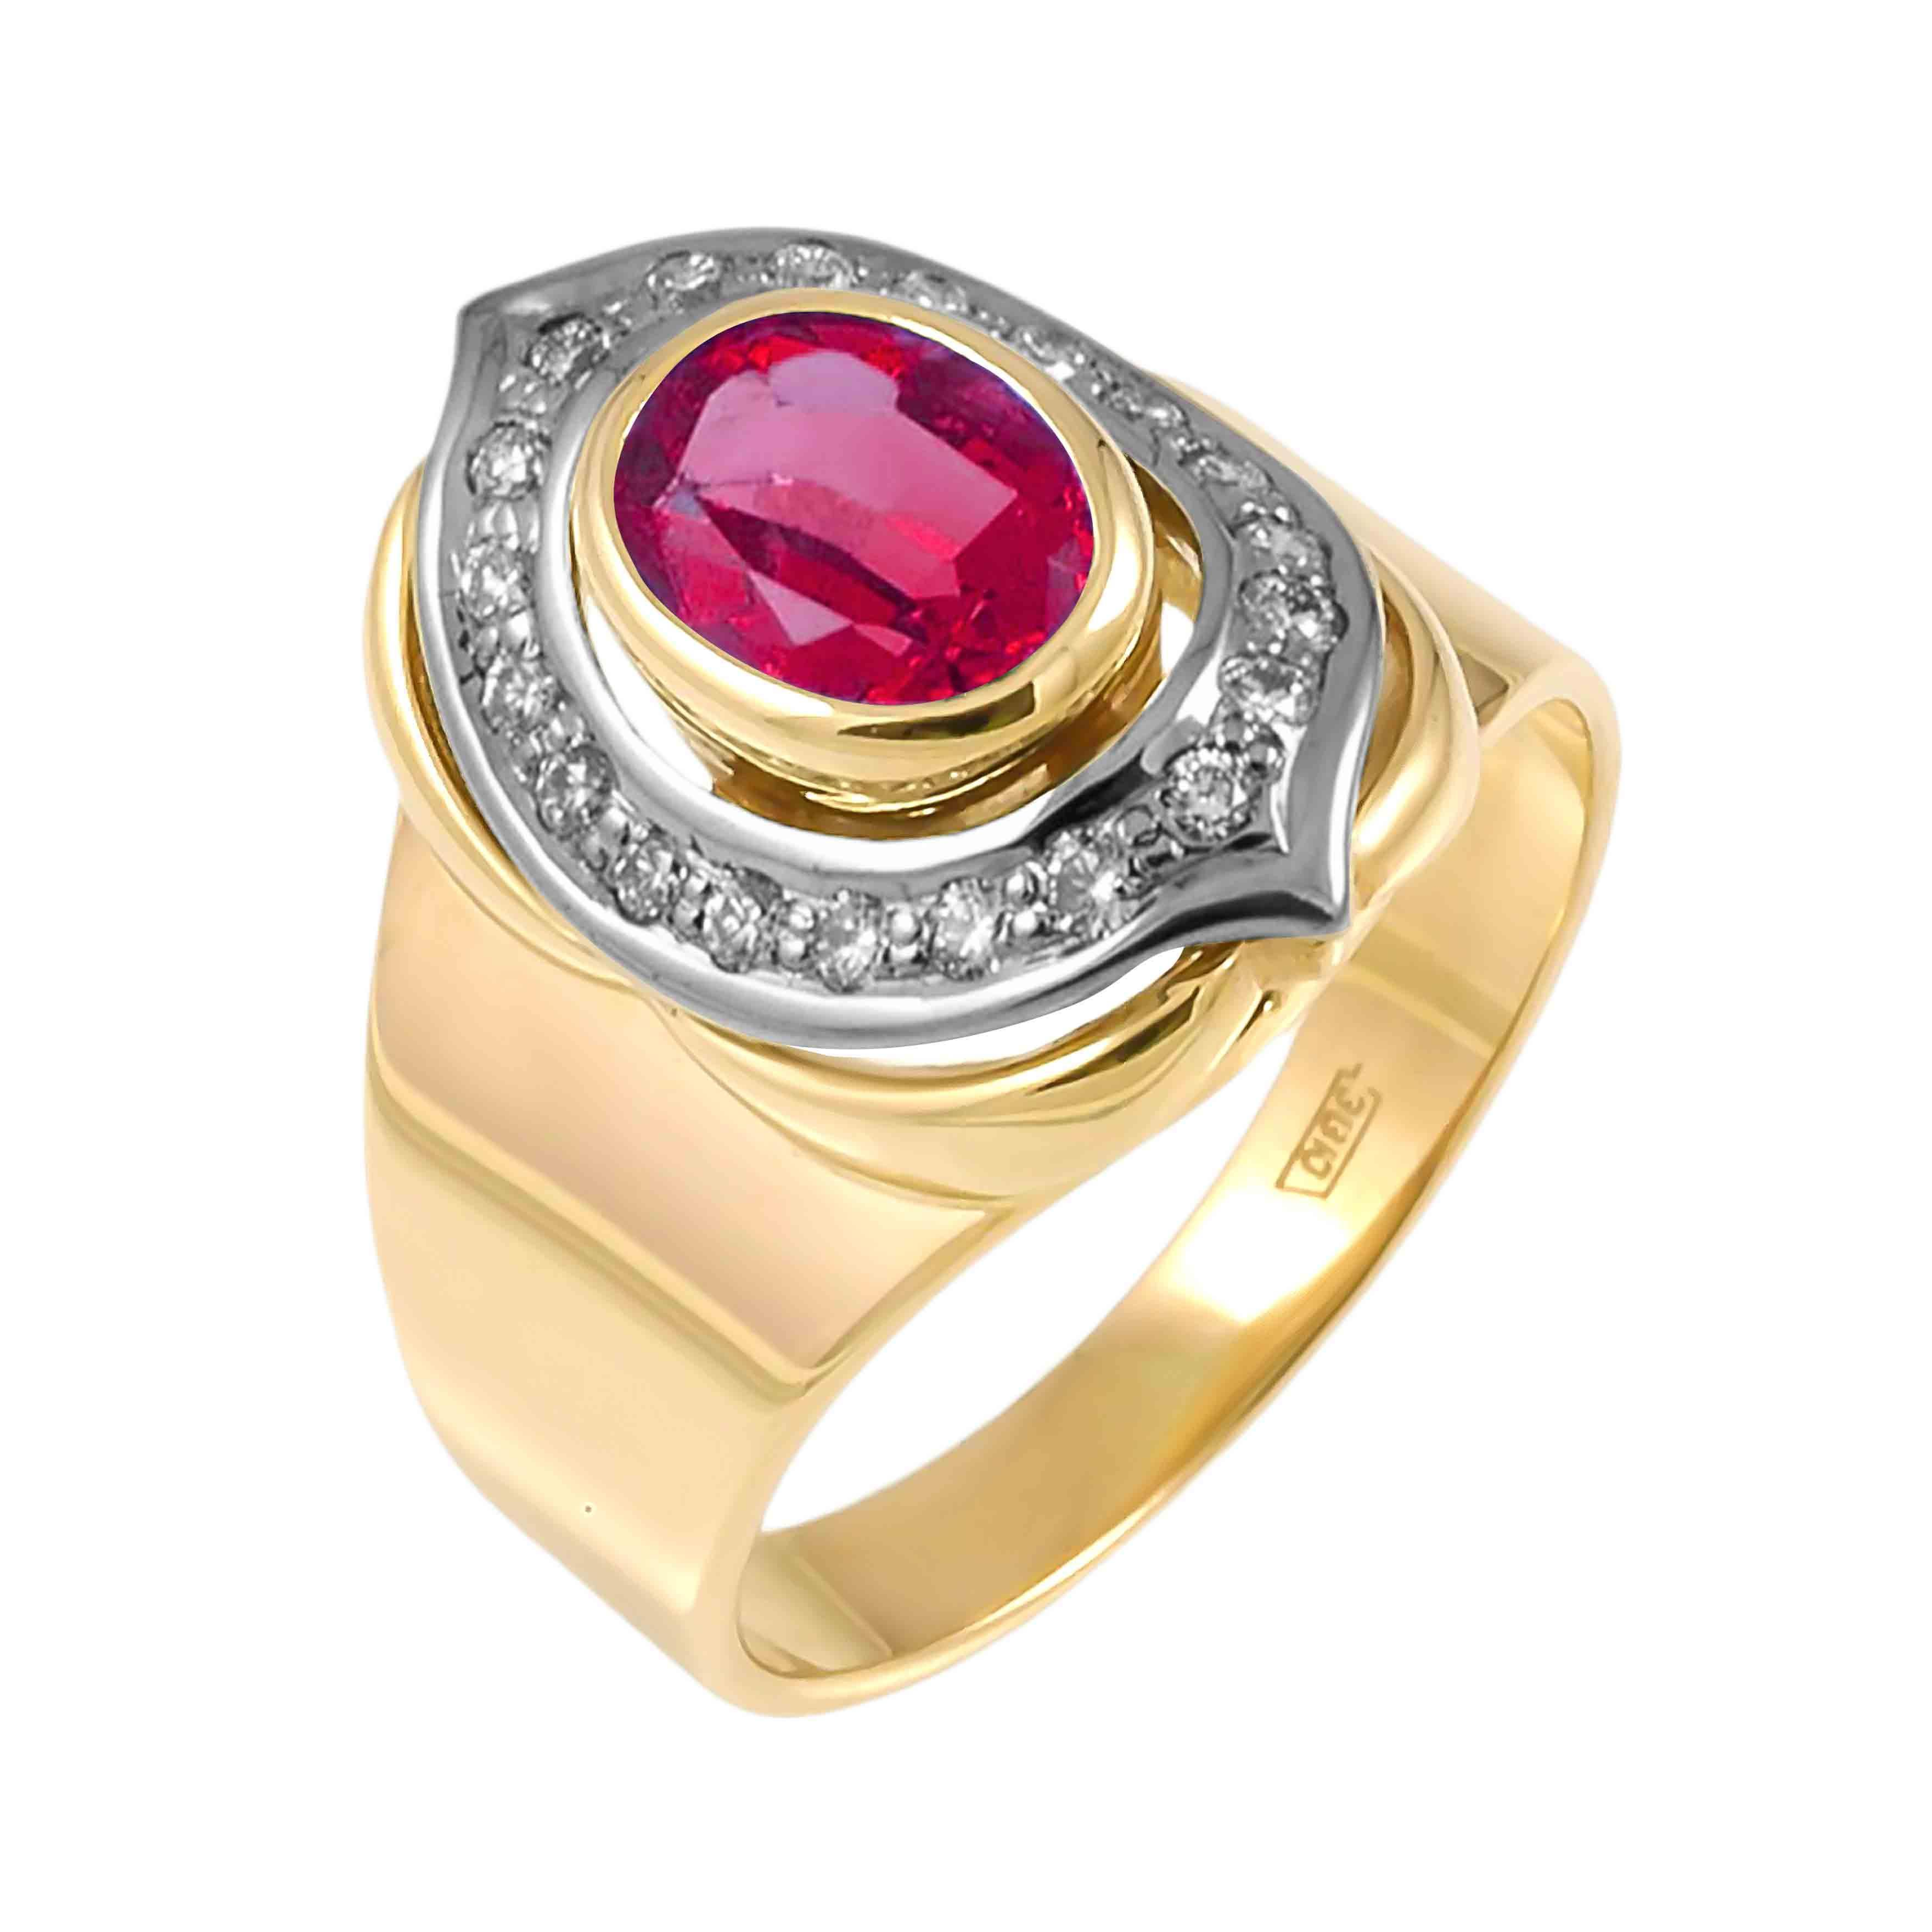 'Pigeon Blood' Ruby and Diamond Ring